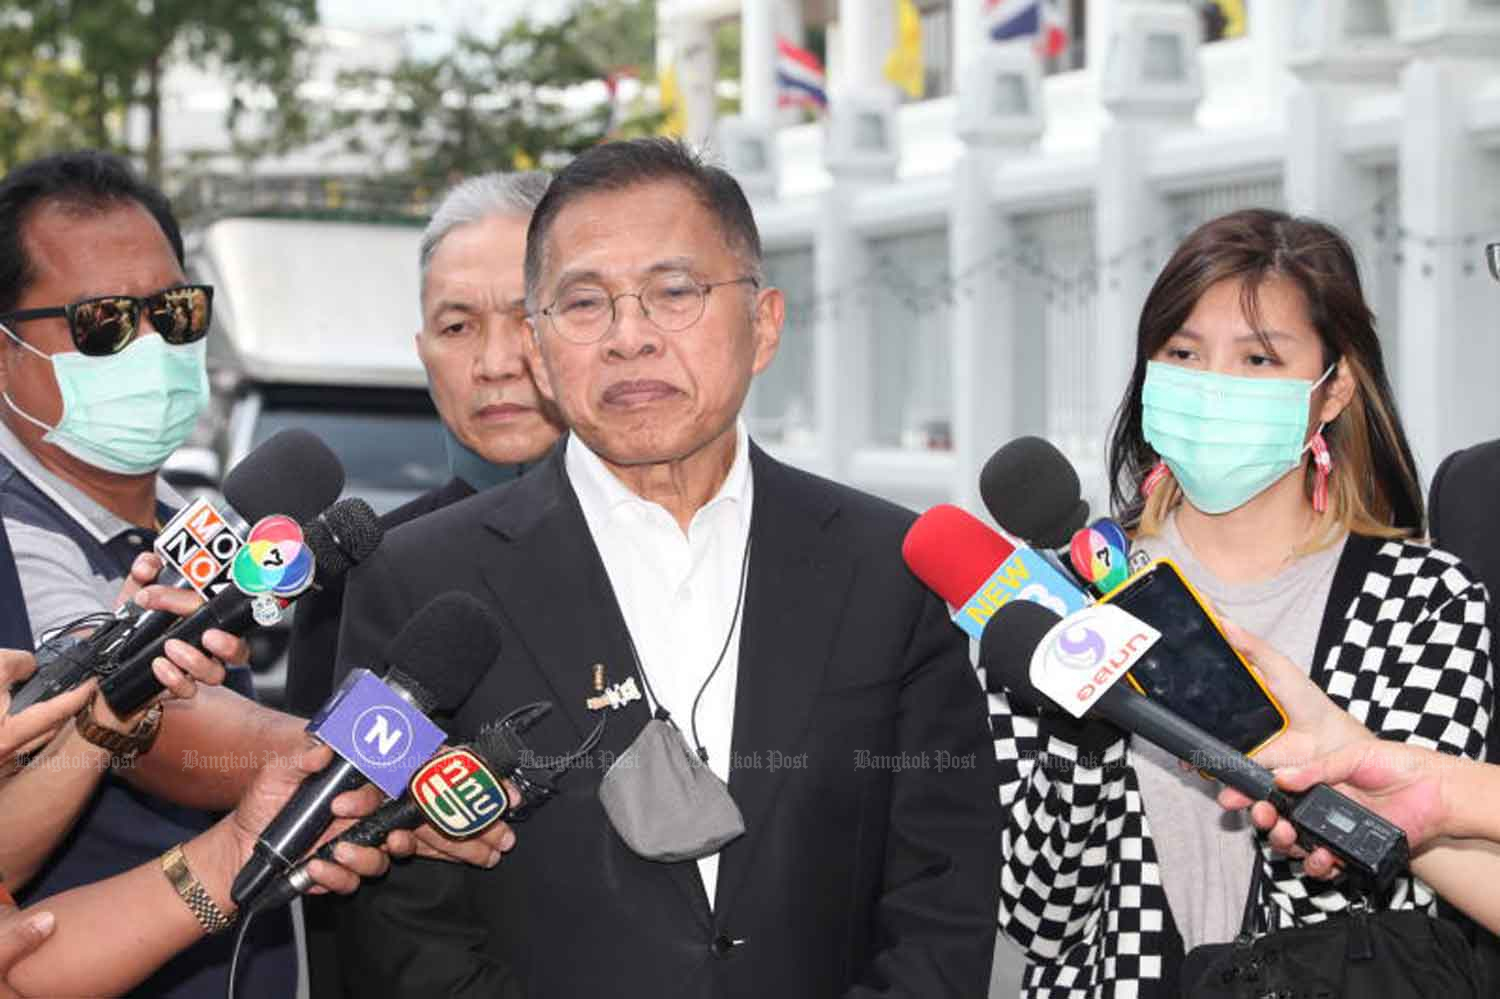 Watana Muangsook talks to reporters after the court ruling on Thursday. (Photo by Apichart Jinakul)